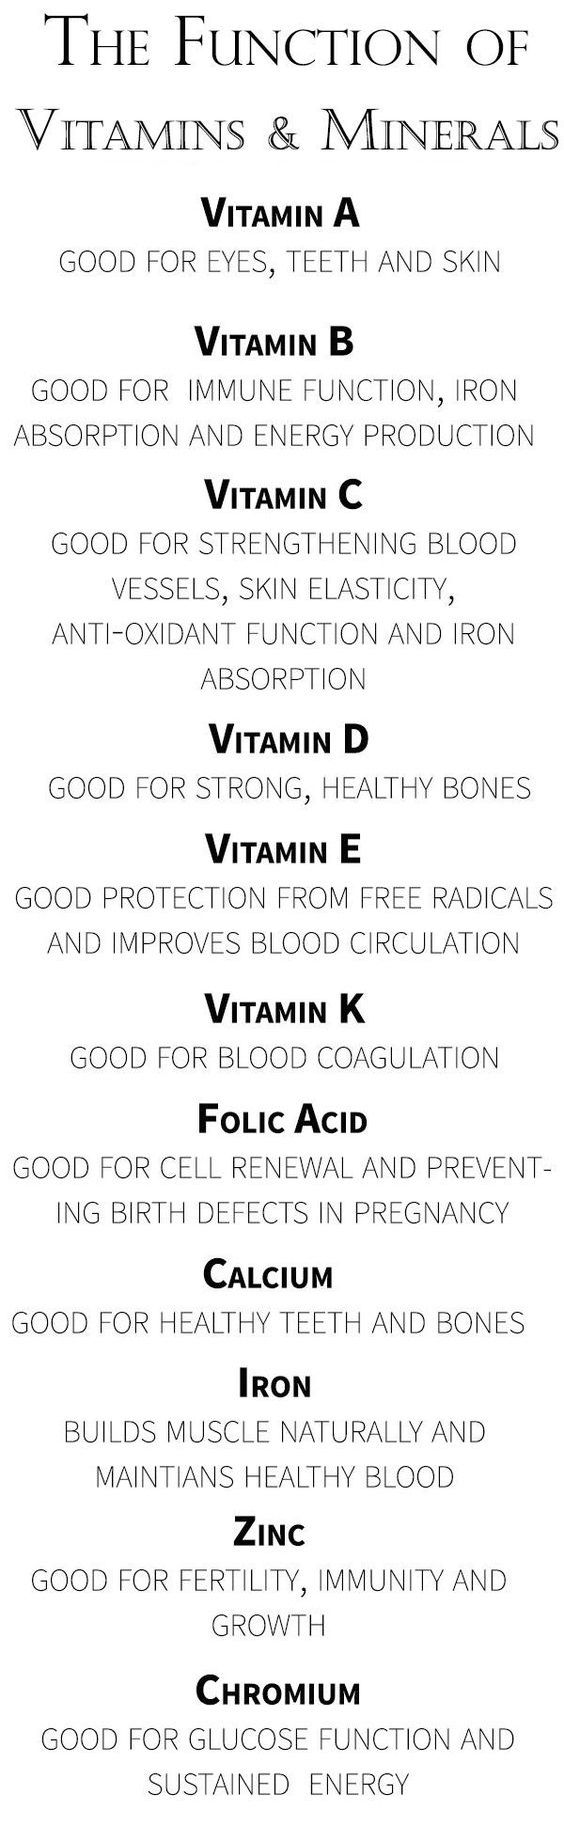 The Function of Vitamins and Minerals | Health and Wellness